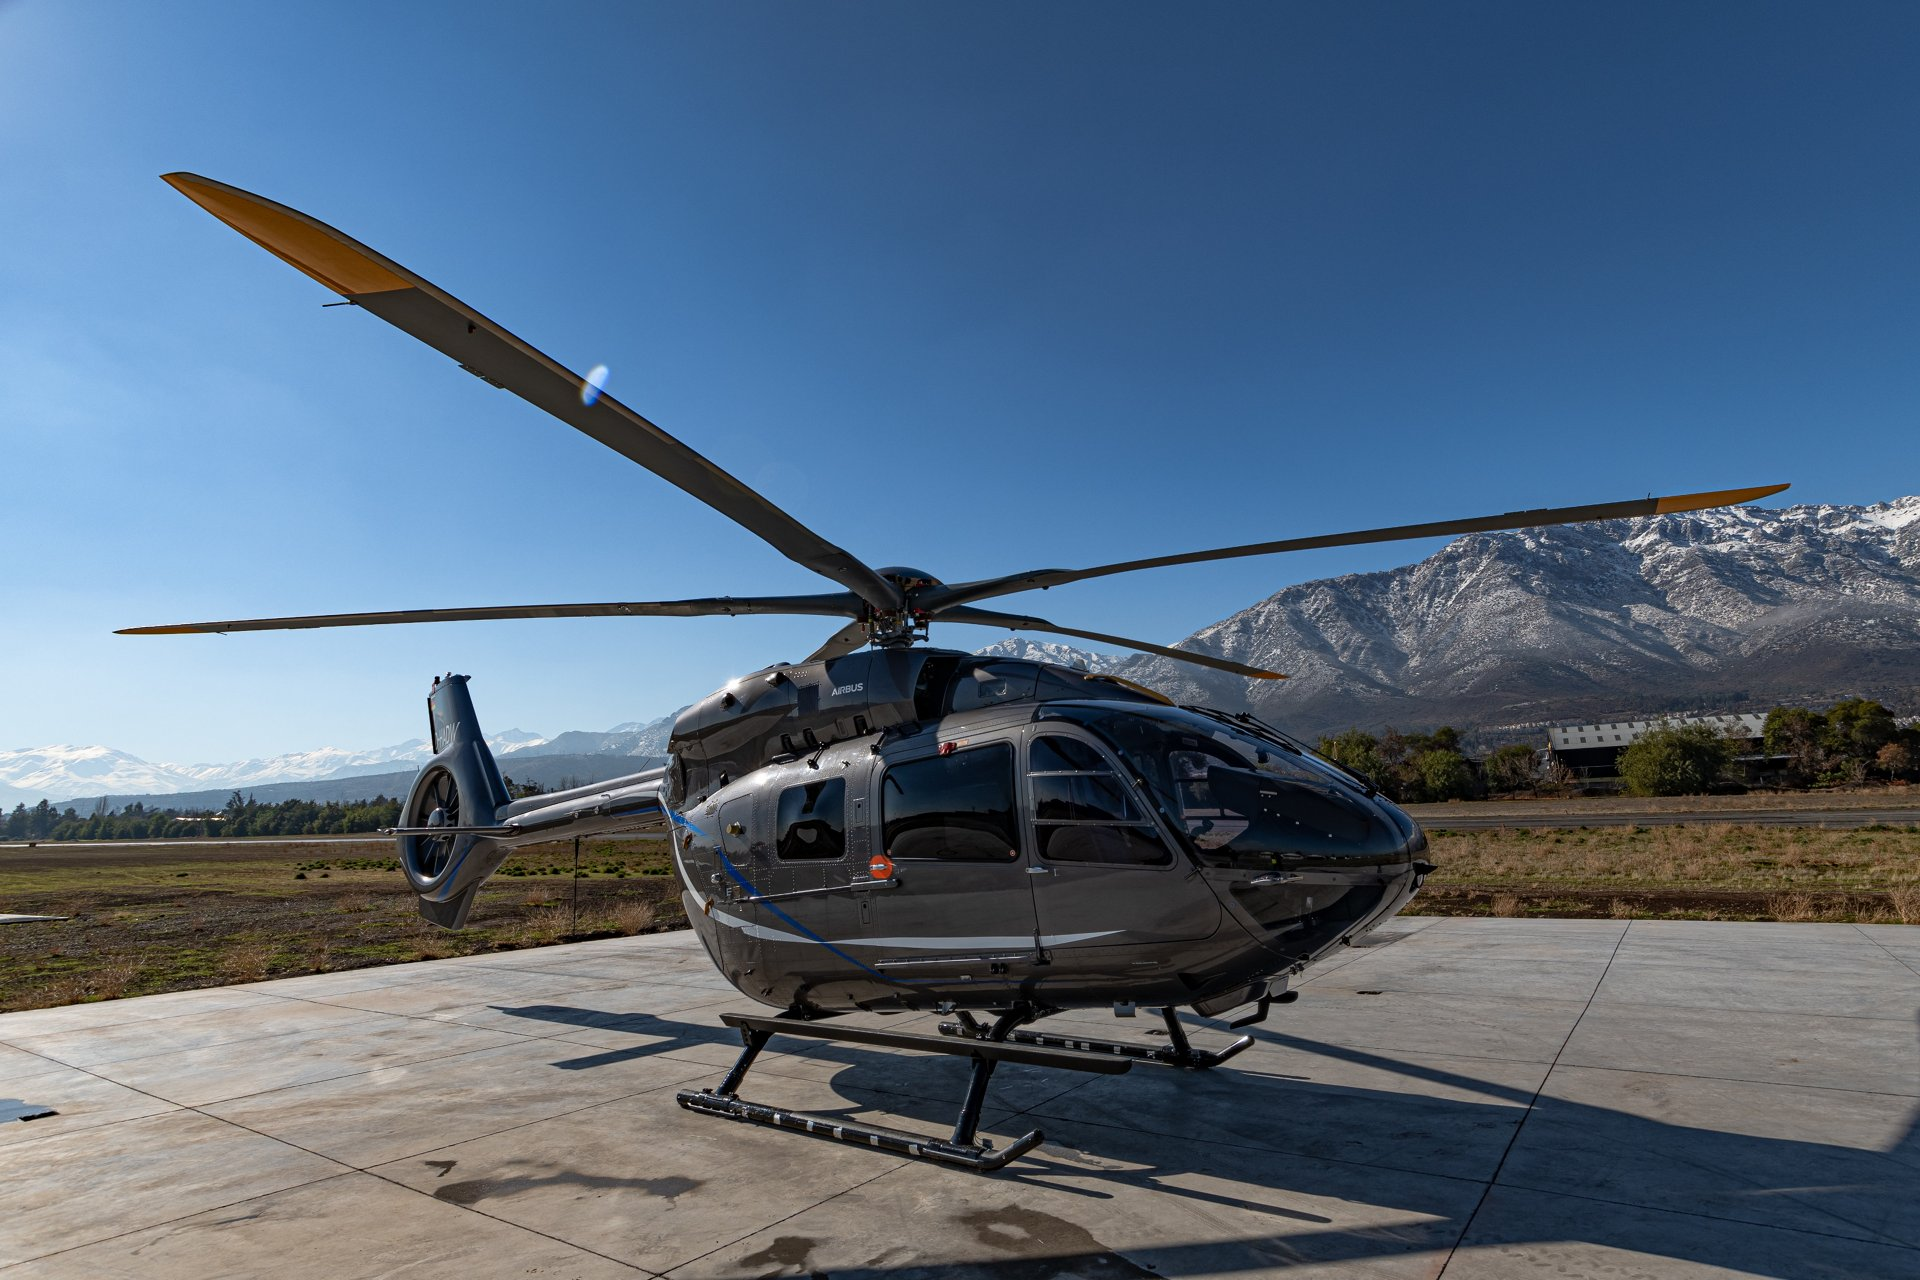 The prototype of the five-bladed H145, which Airbus Helicopters unveiled at Heli-Expo in Atlanta last March, has just arrived in Chile where the aircraft will start a high altitude flight campaign. EASA certification is expected in early 2020, with deliveries following later that year.